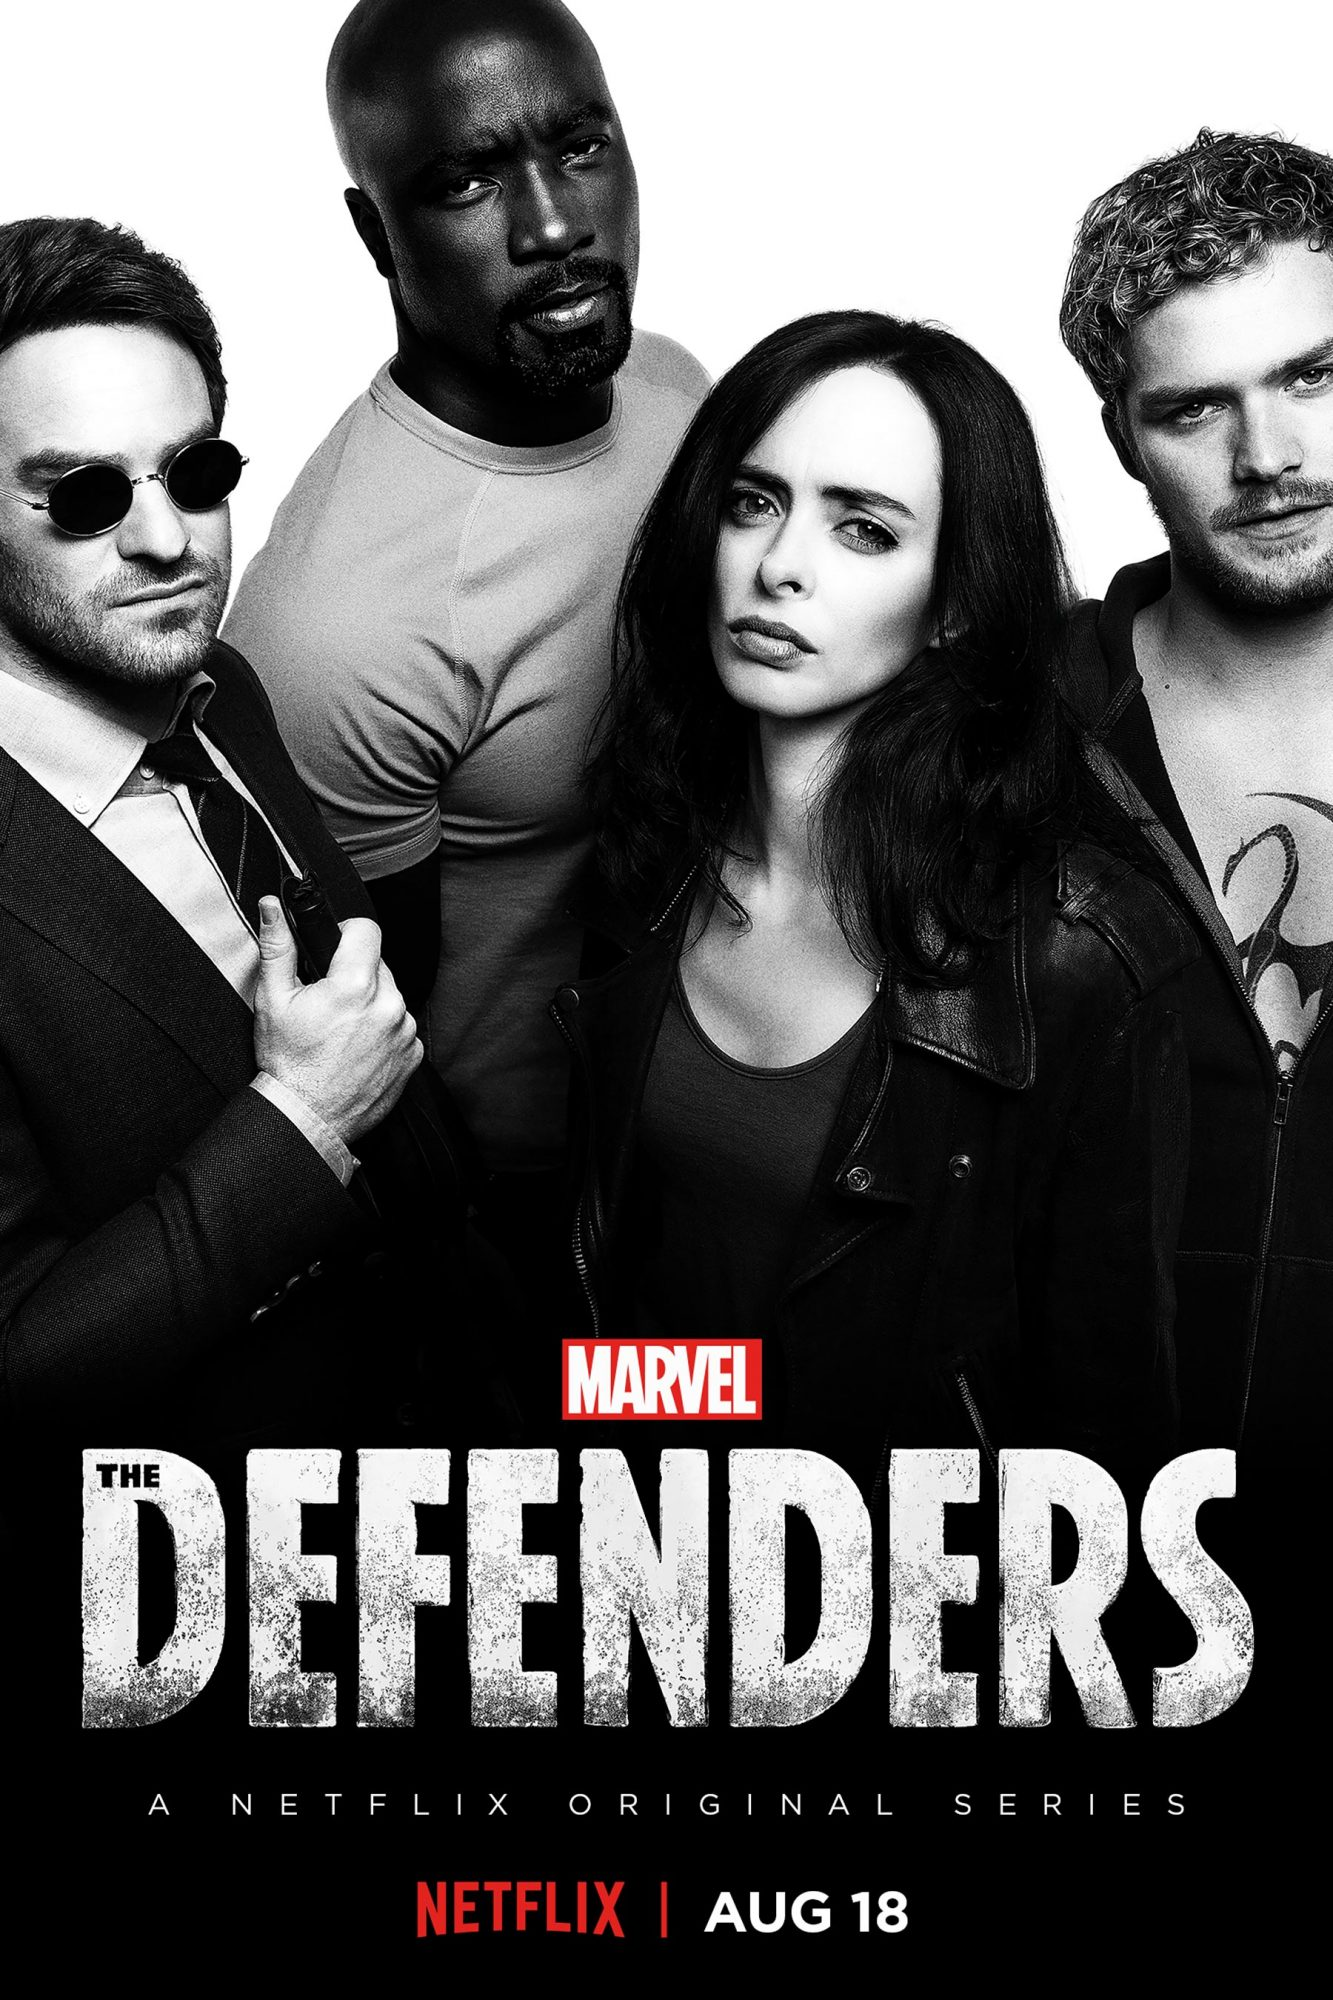 """MARVEL'S THE DEFENDERS"" Key Art CR: Netflix"